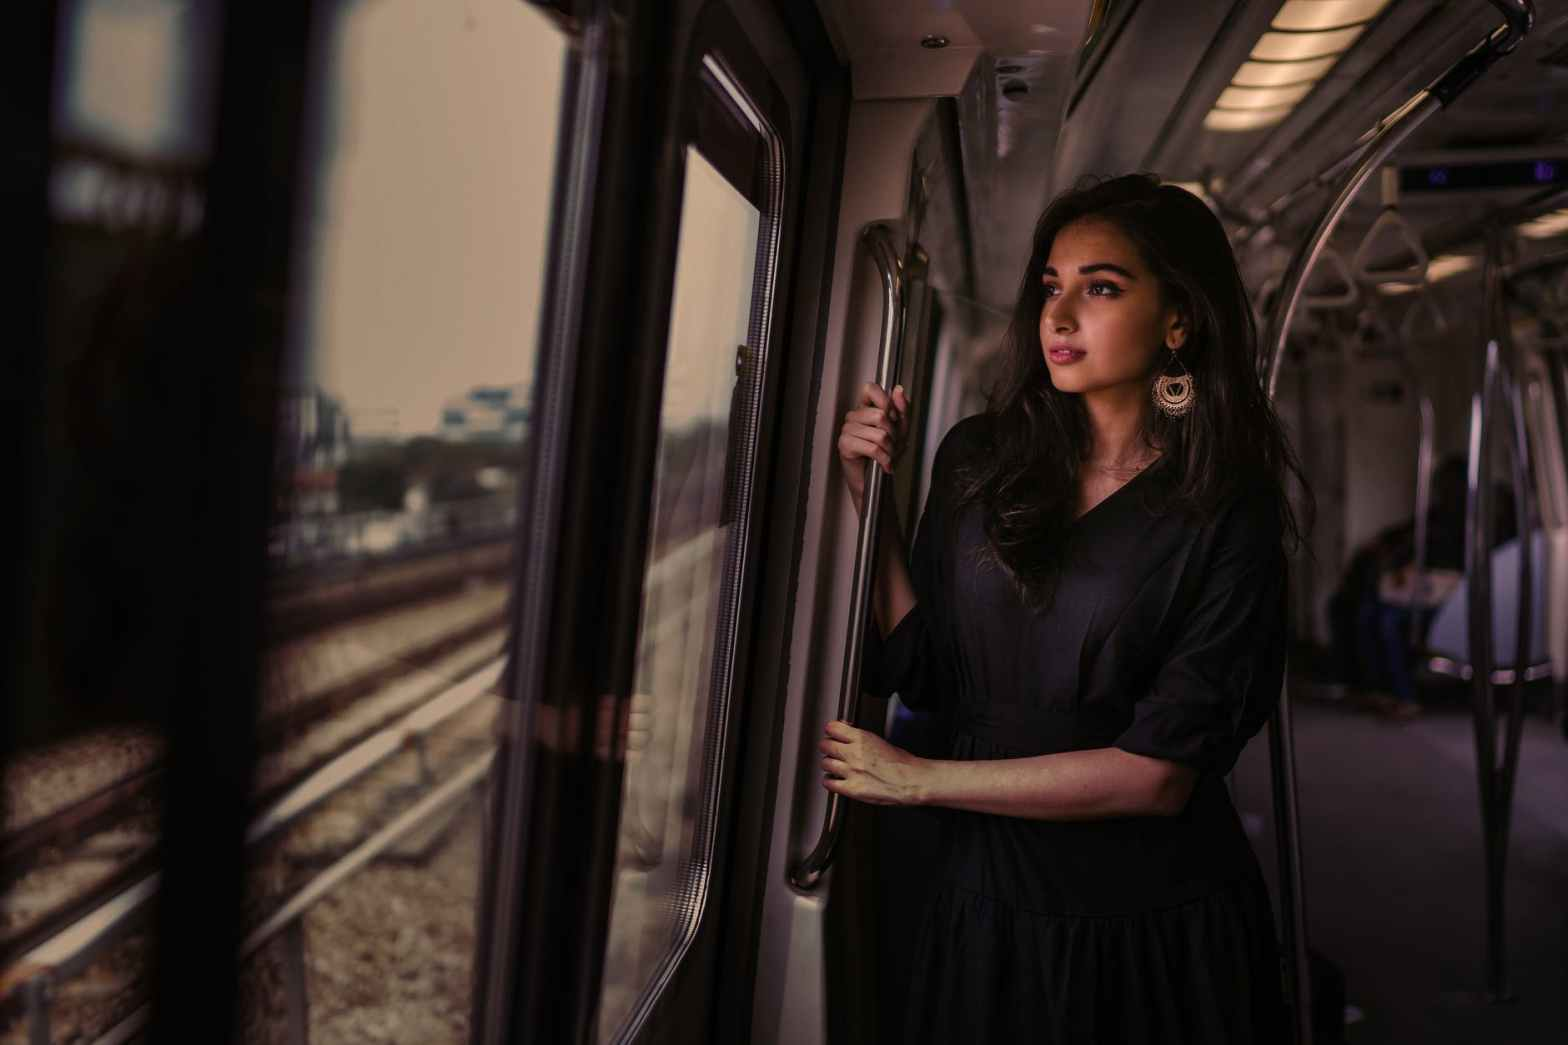 photo of woman standing inside train holding on metal rail while looking outside